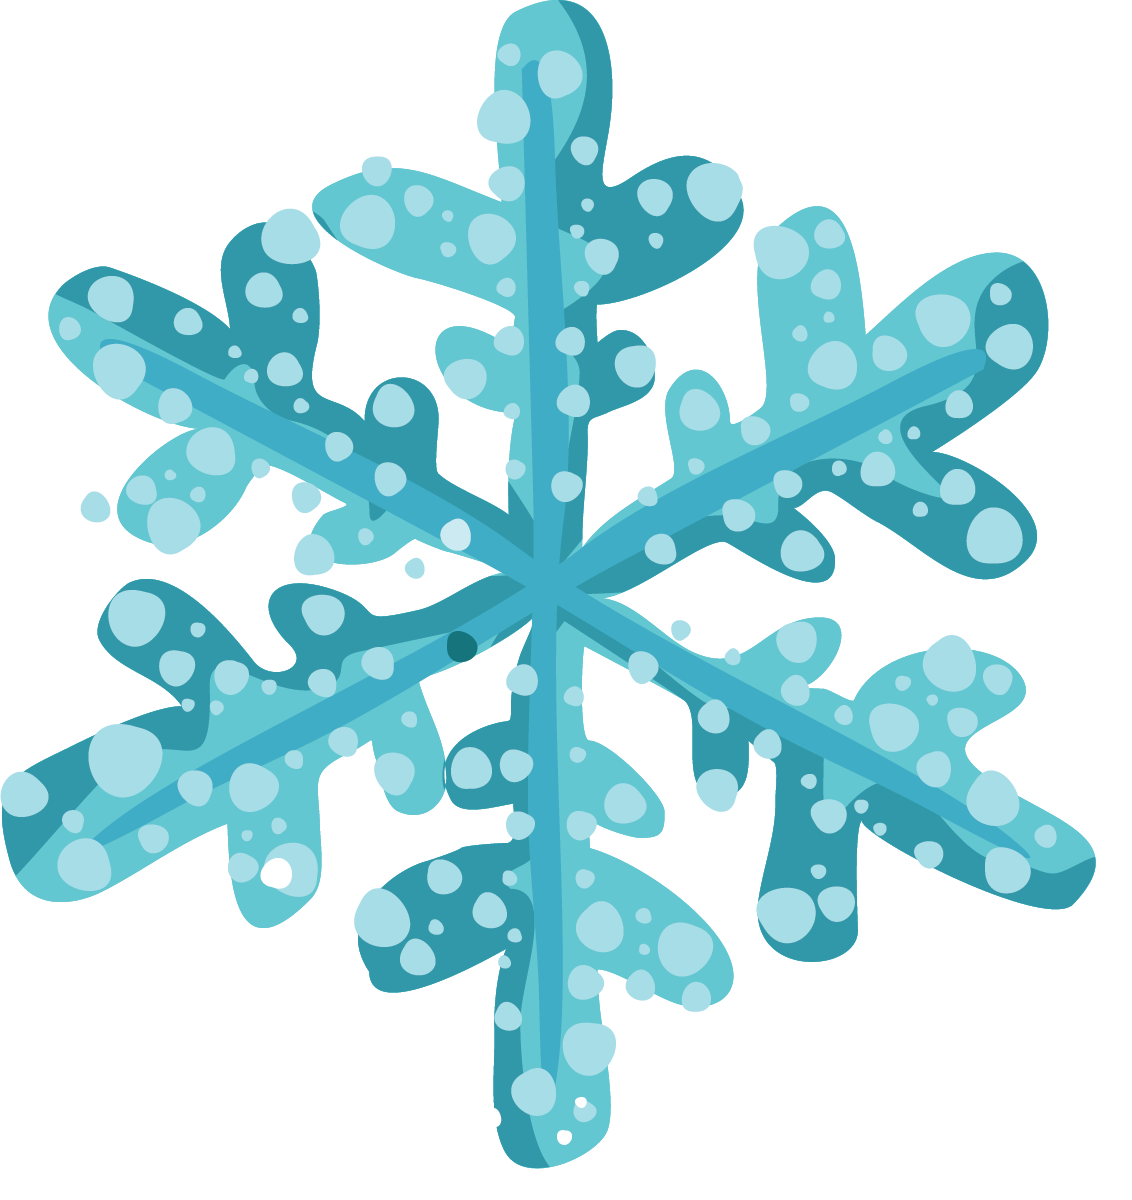 Moving clipart snowflake Christmas WikiClipArt clipart snowflake clipart